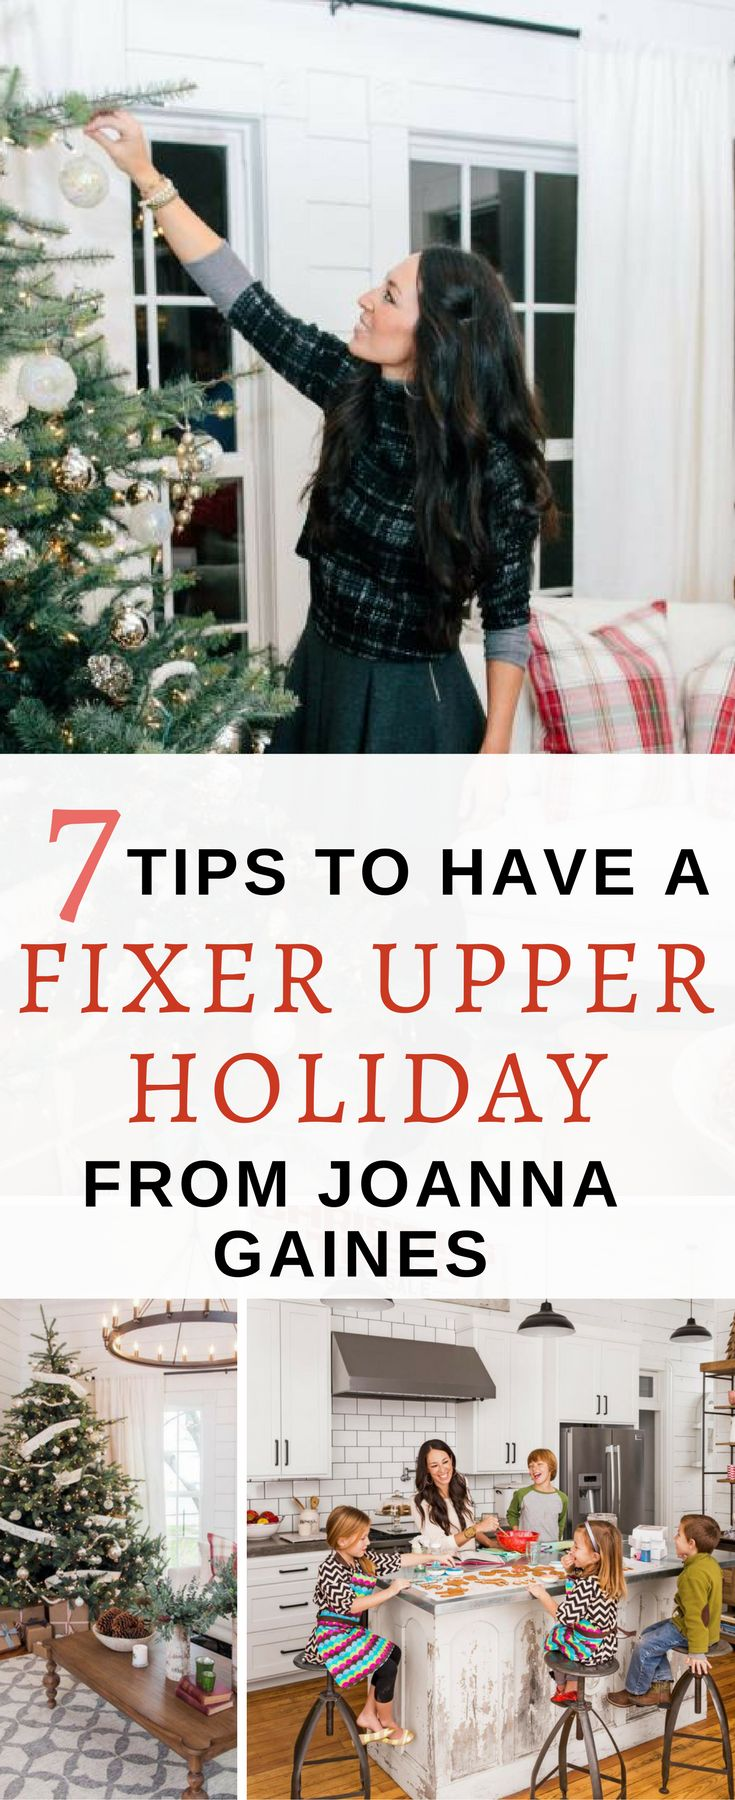 Yes!! Some great tips from Joanna's Instagram, blog and interviews to decorate for the holidays. Saving, so I can be just like Joanna this Christmas.